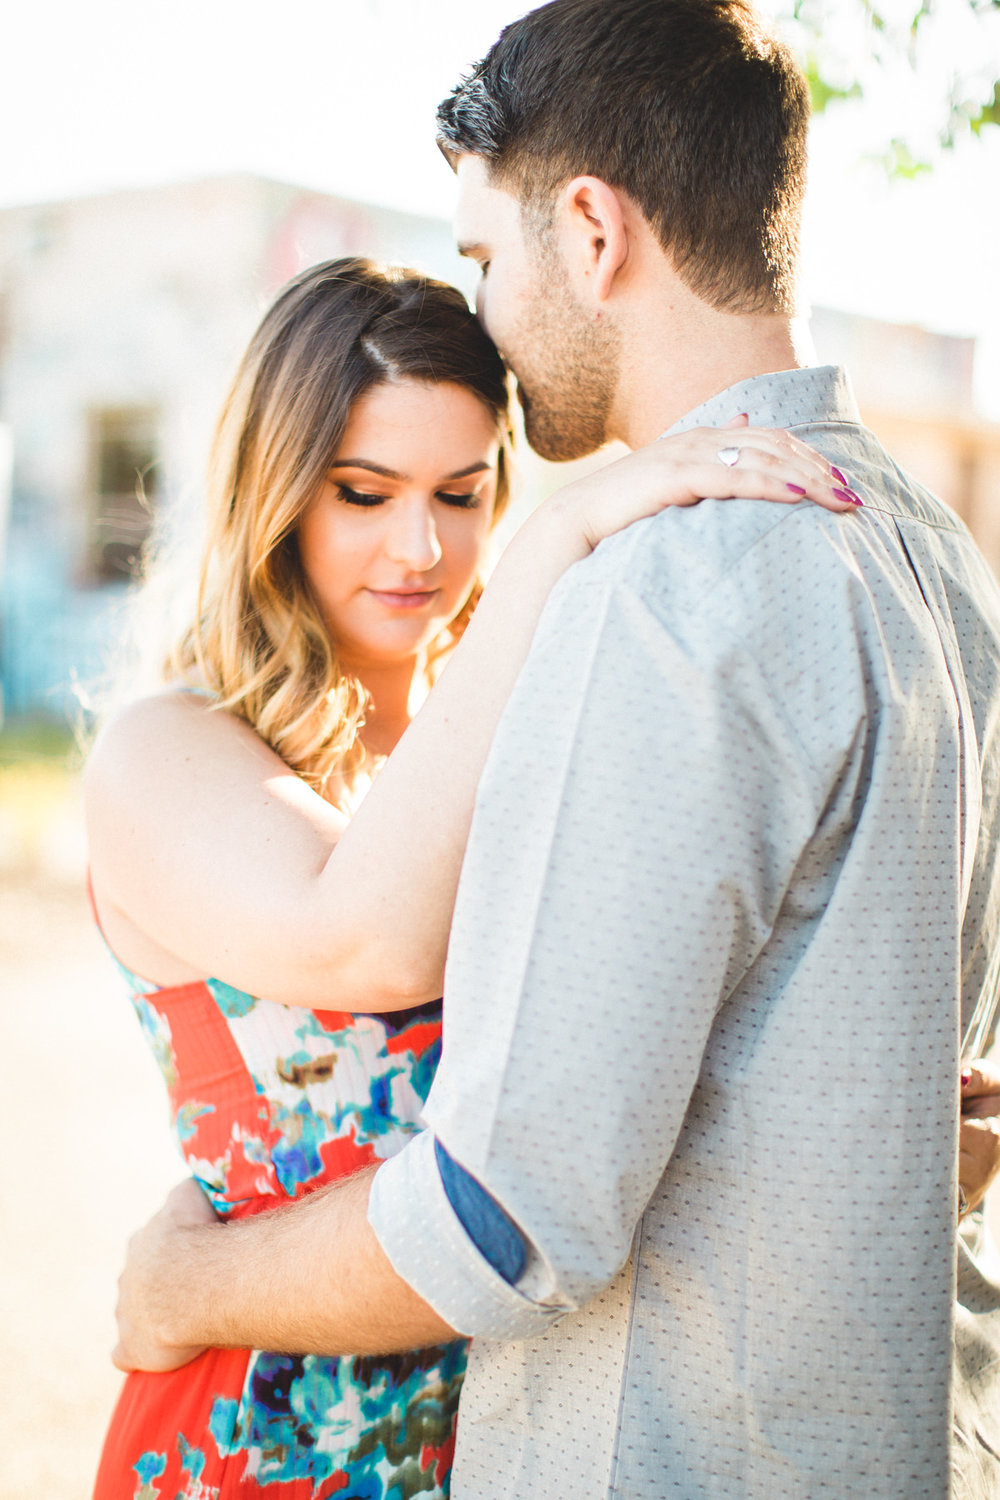 the-light-and-glass-wedding-engagement-photography-20160712-18-32-7.jpg